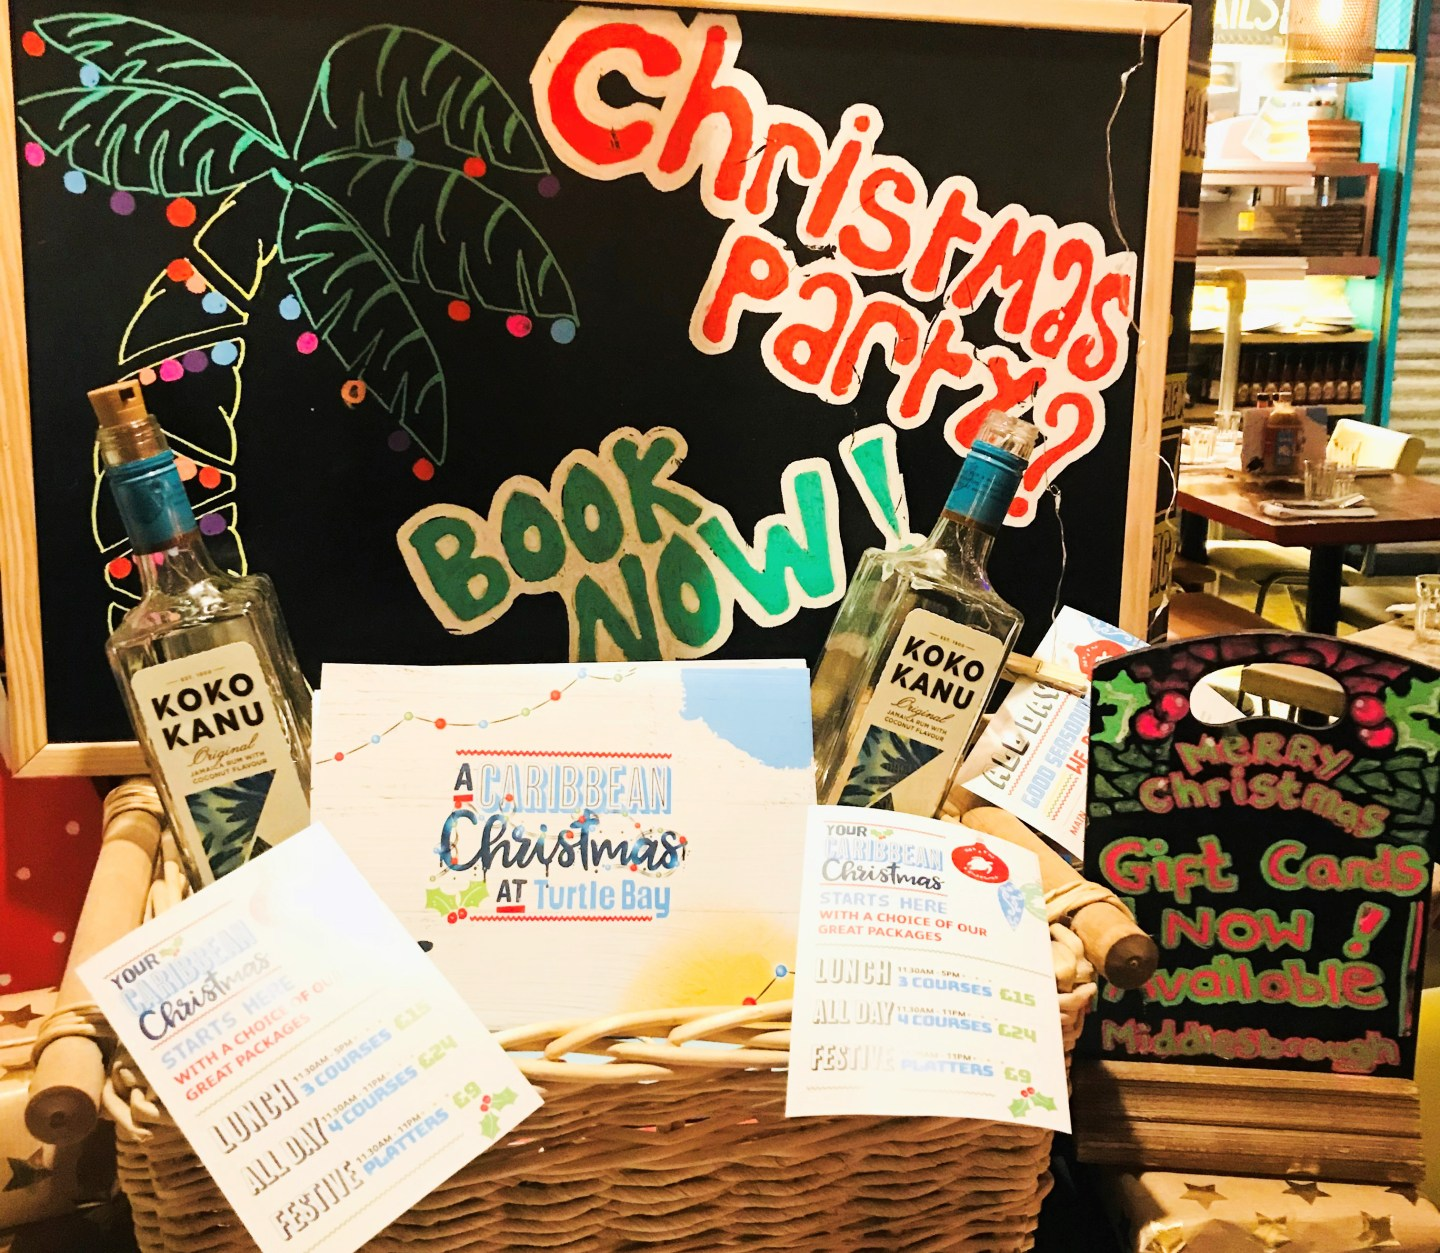 Spice up Christmas with turtle bay!